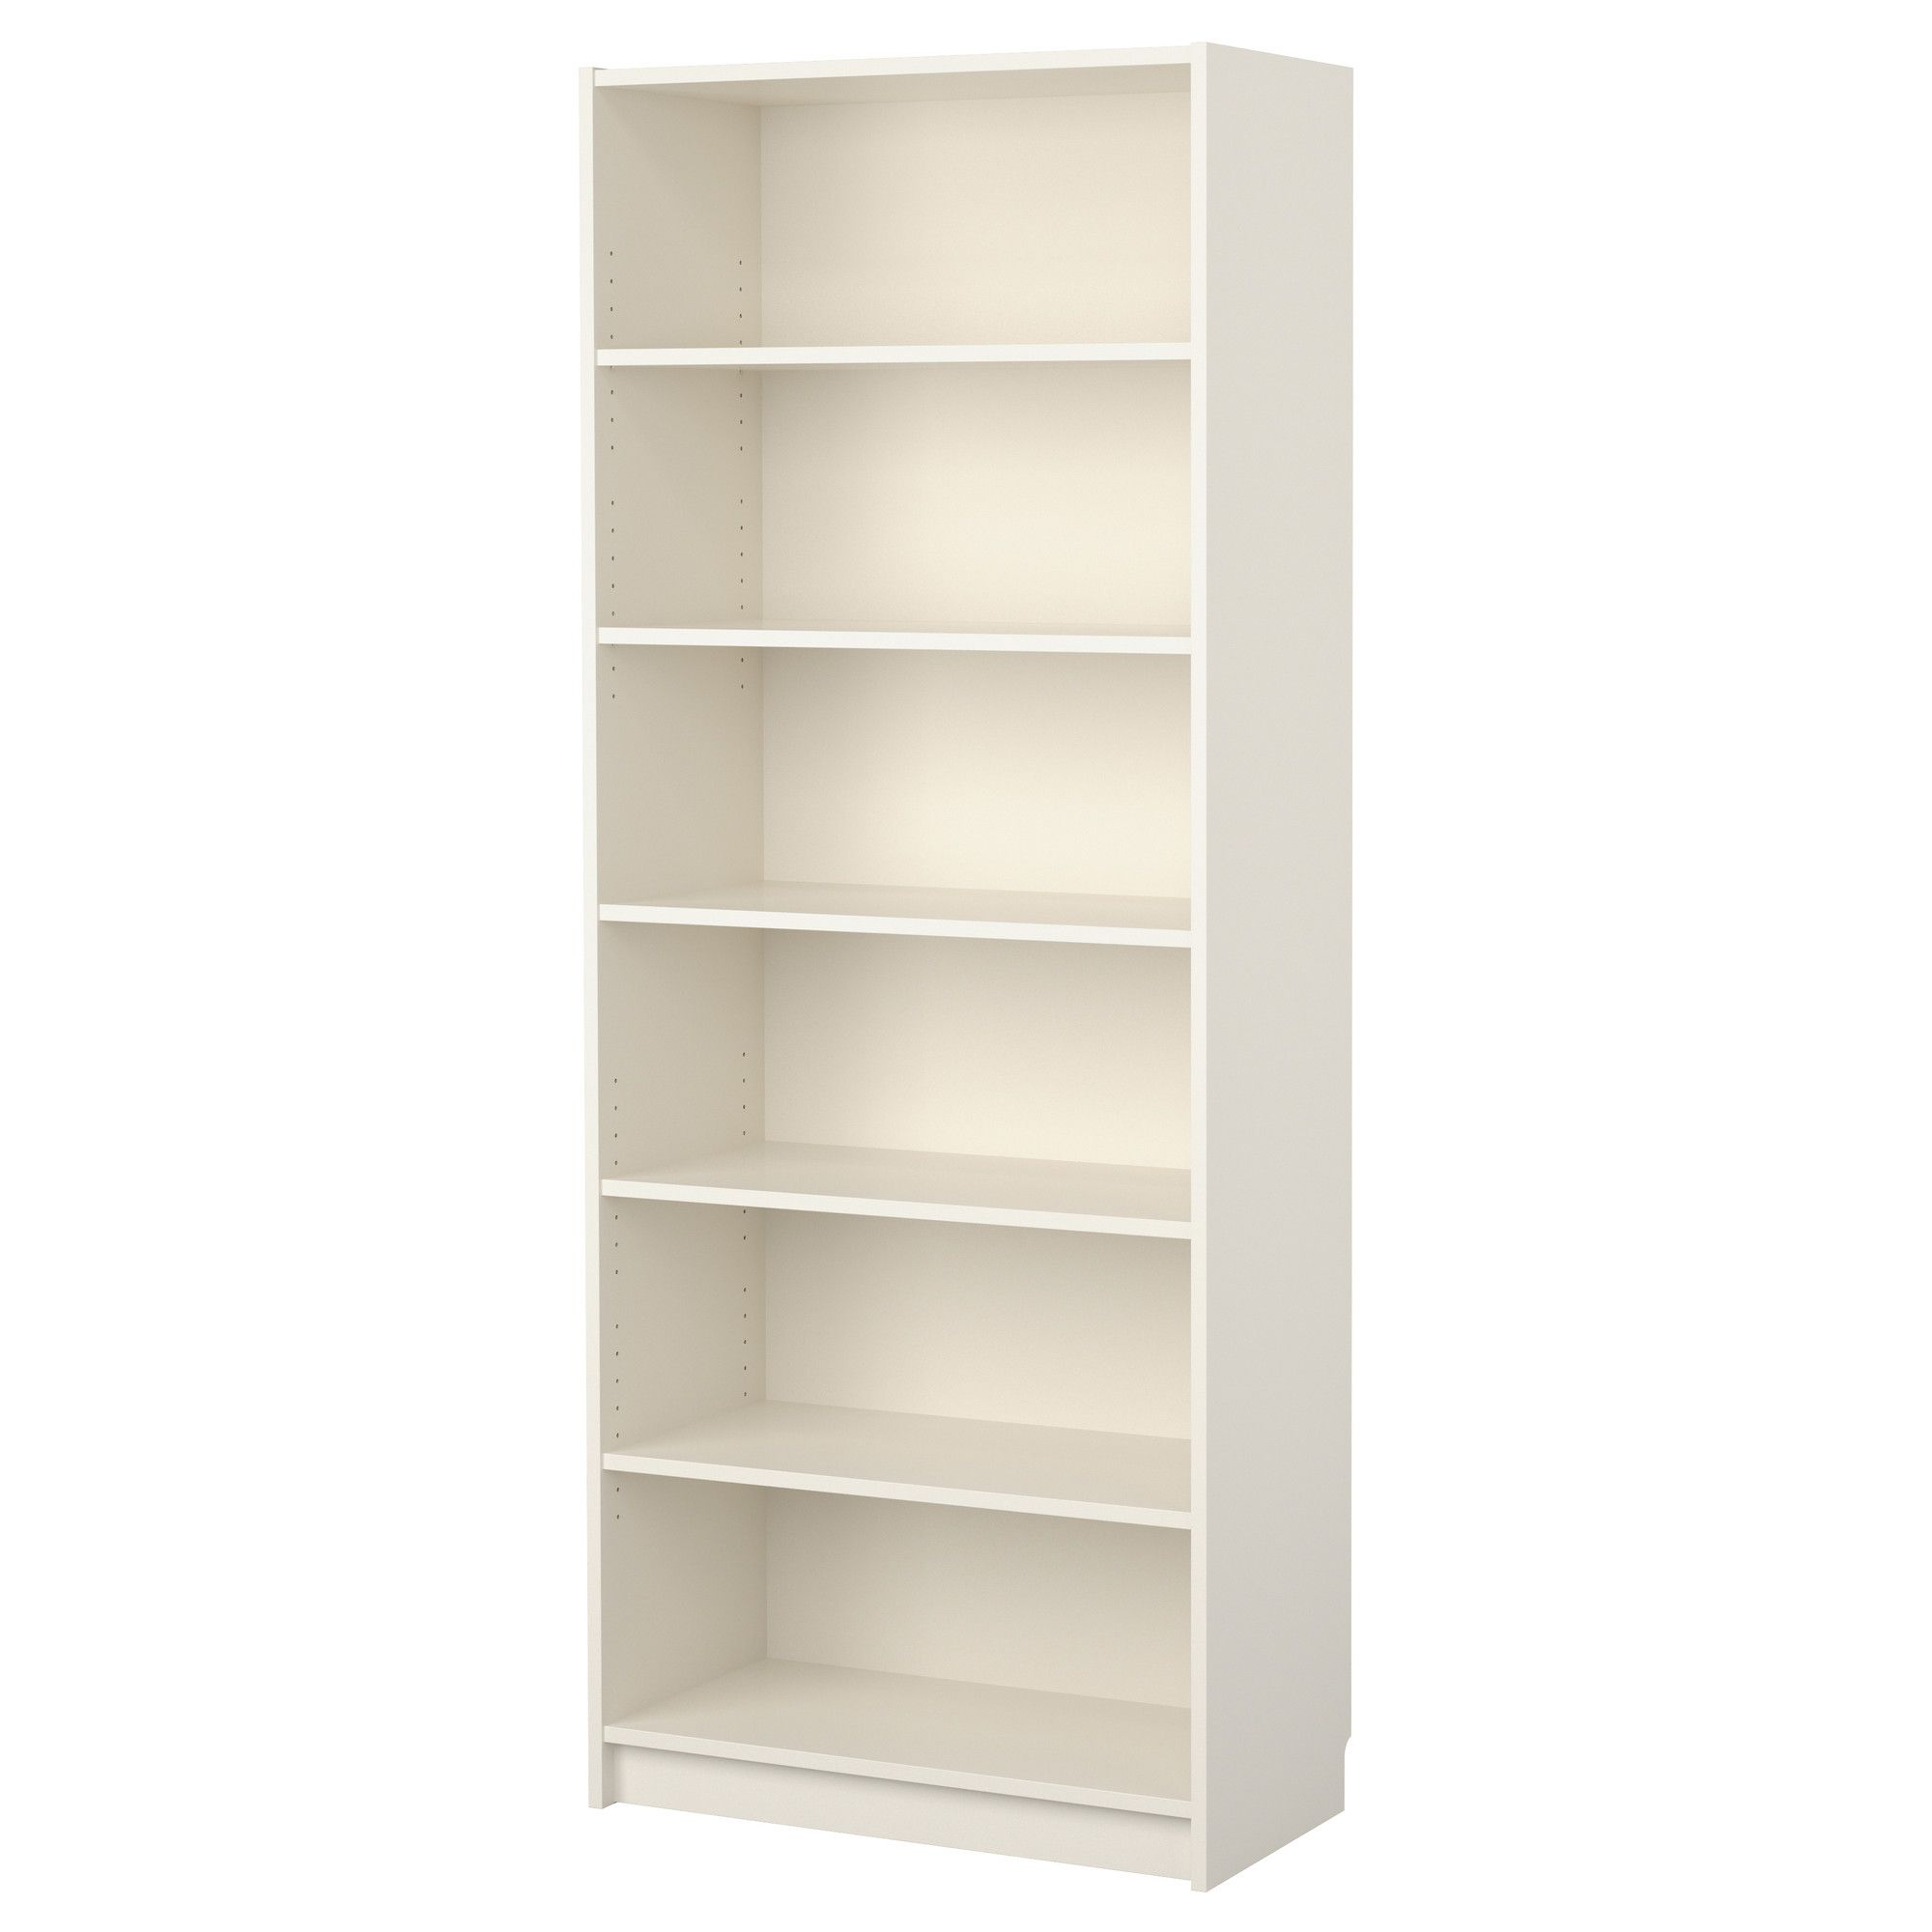 Shelving Ideas Really Like This It Will Hold Baskets And Boxes With No Problem Billy Bookcase